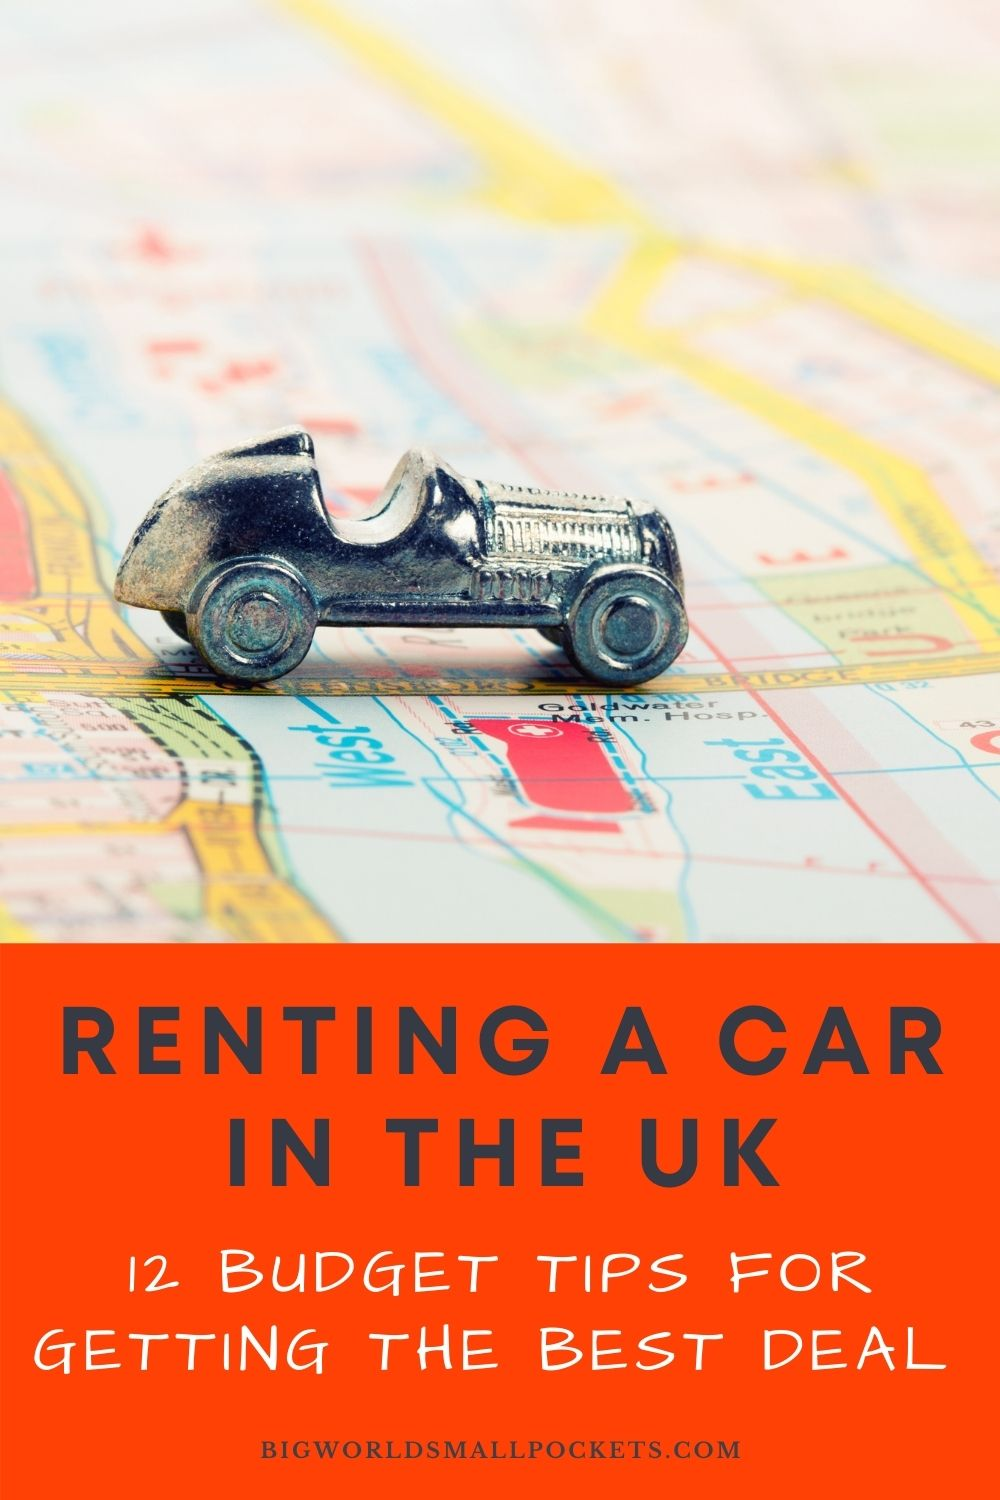 12 Top Tips for Renting a Car in the UK